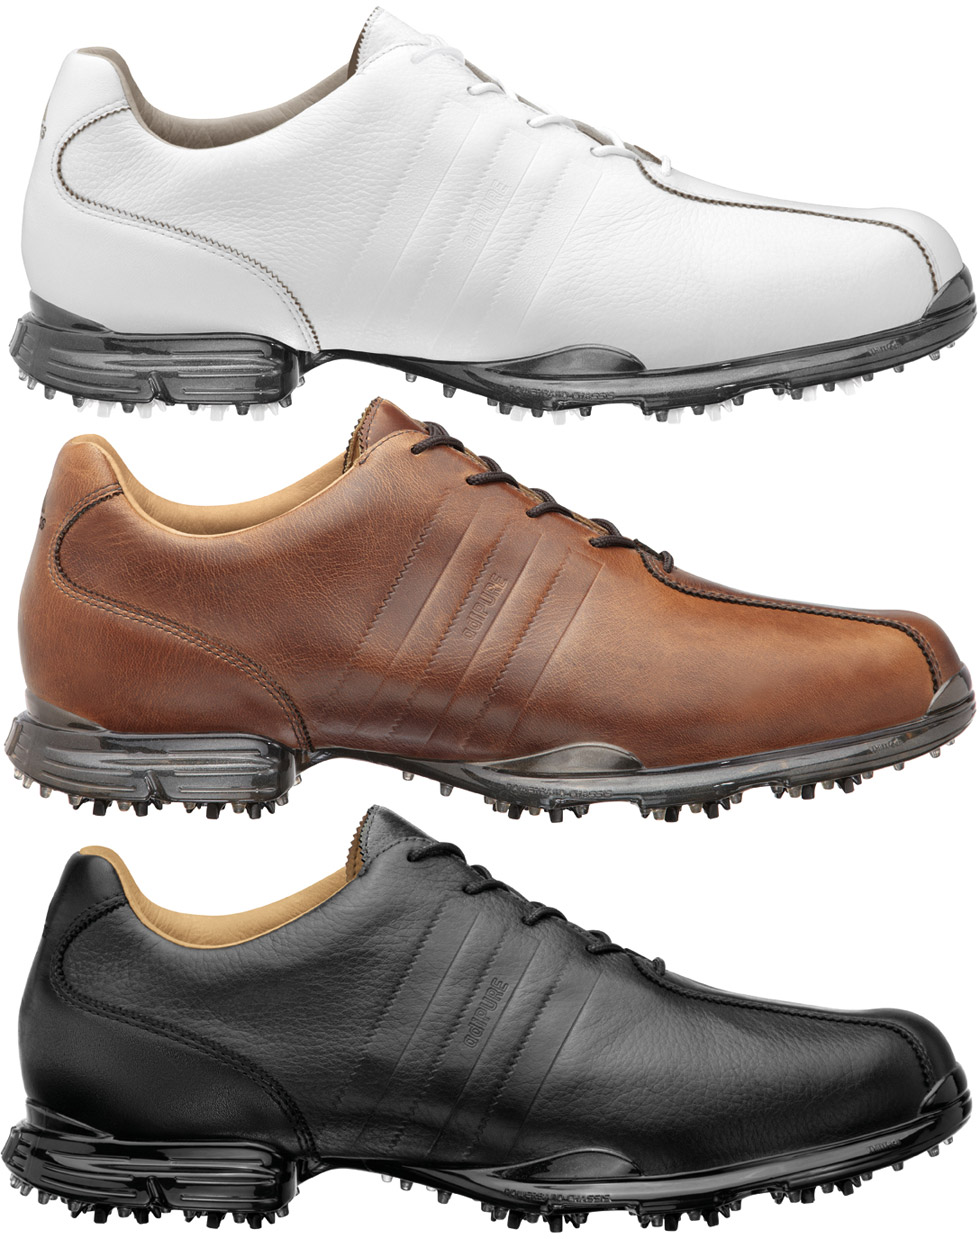 adidas adipure golf shoes brown